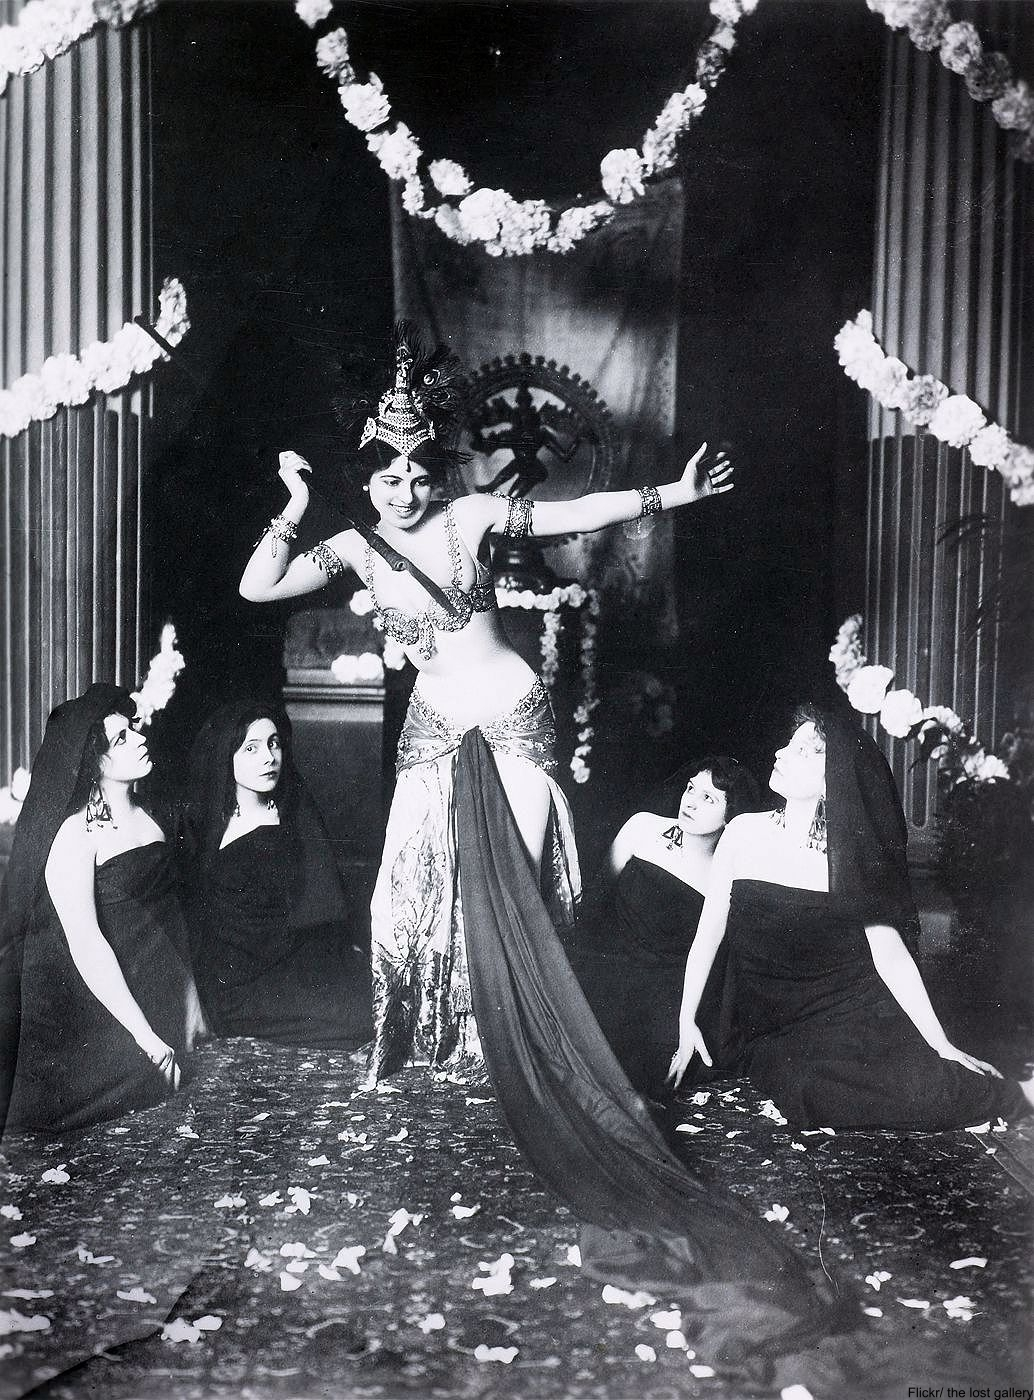 The Wild Story of Mata Hari